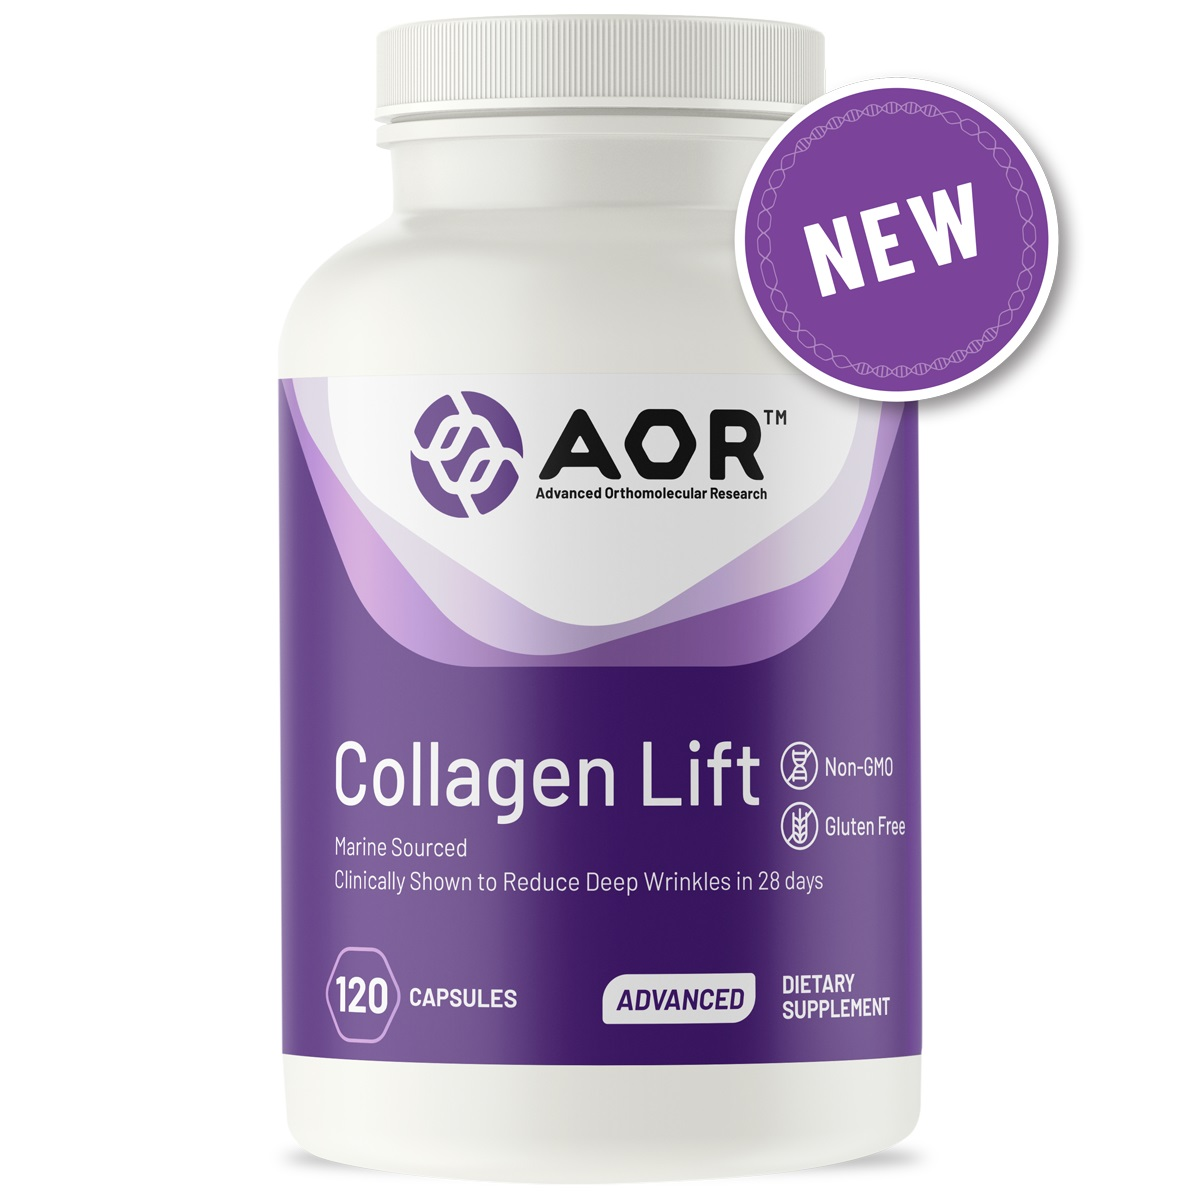 Image of Collagen Lift